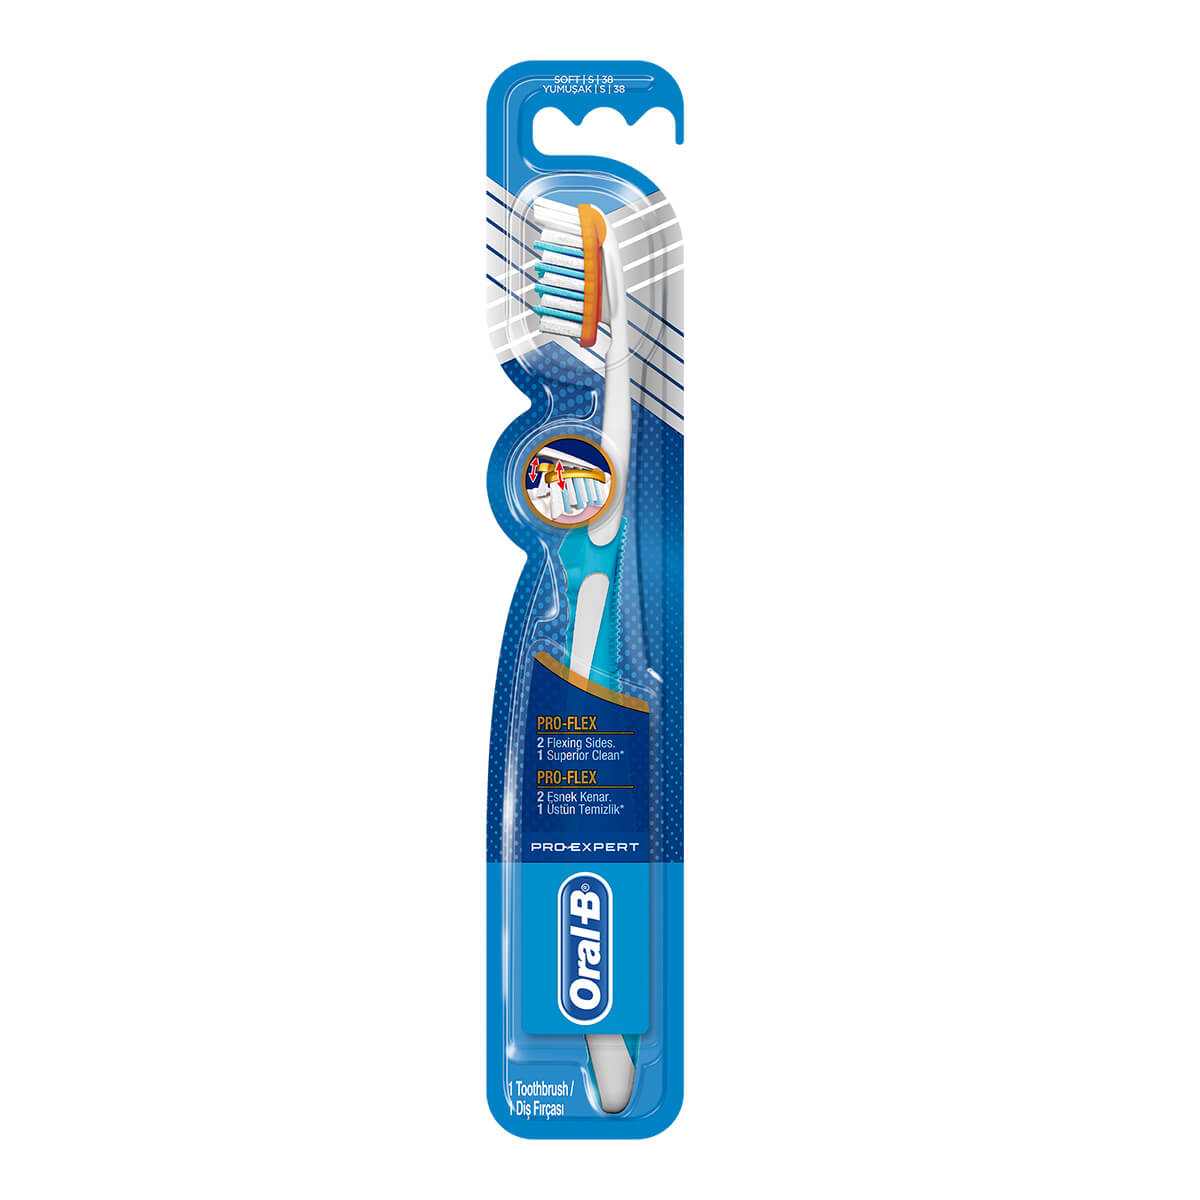 Oral-B Pro-Expert Clinic Line Pro-Flex Manual Toothbrush